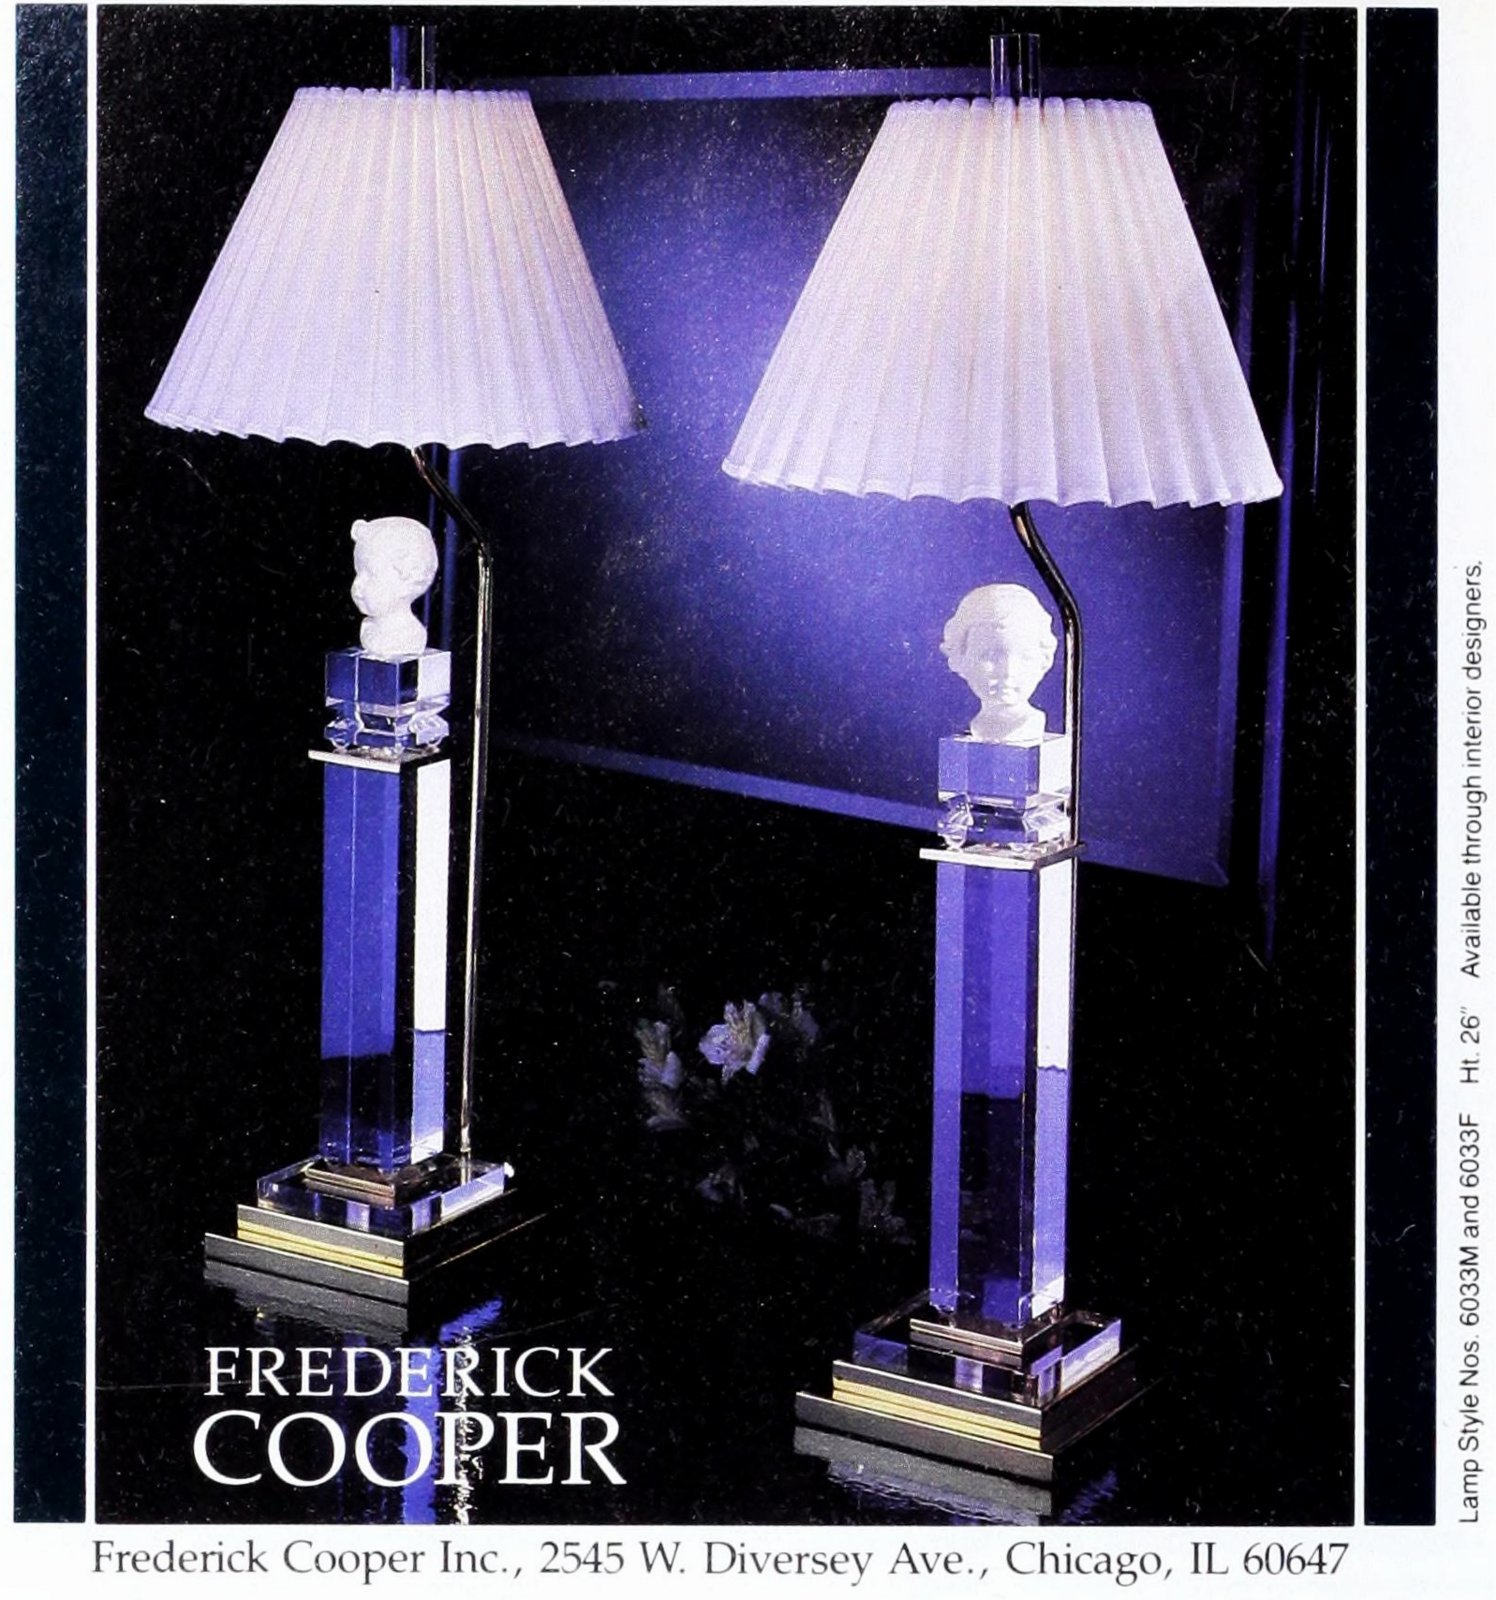 Vintage lamps with squared crystal column bases topped with porcelain doll heads (1989)